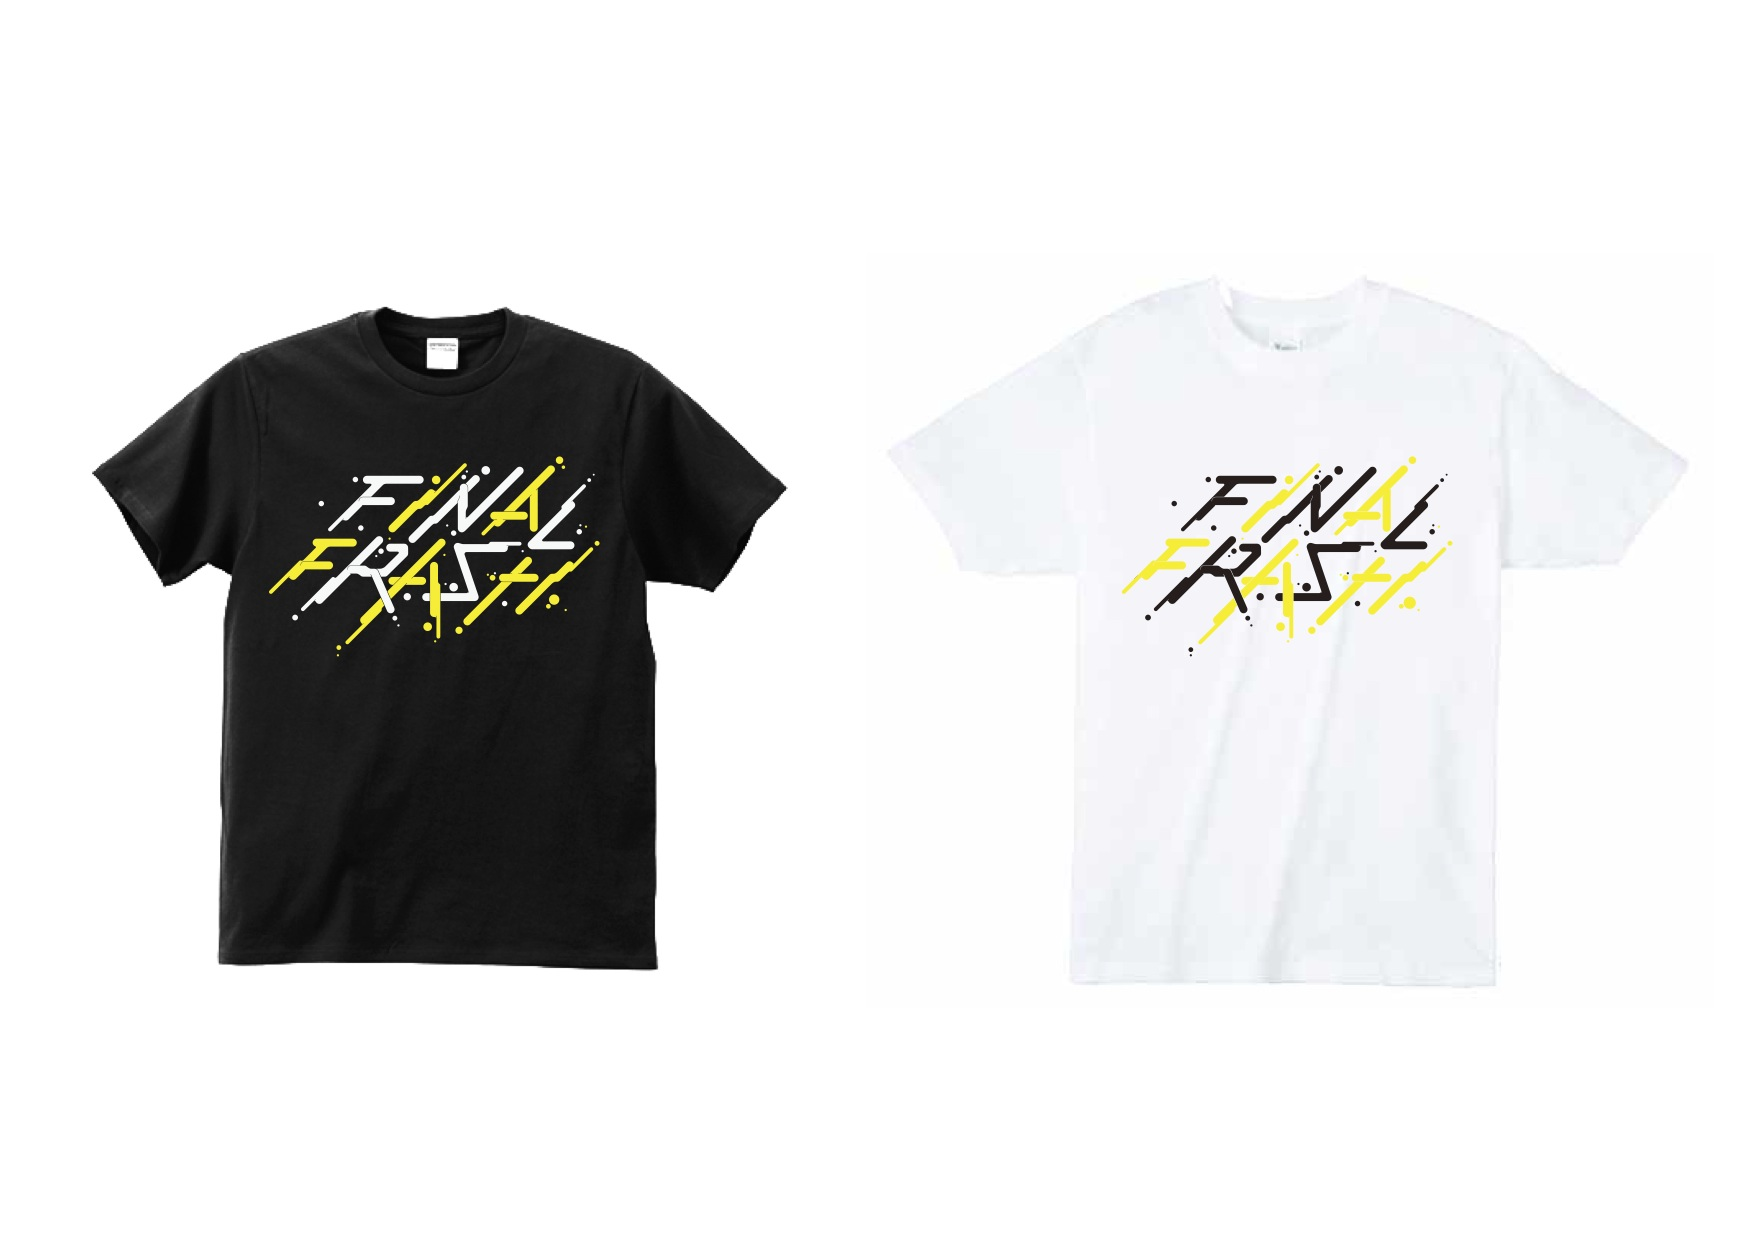 FINAL_FRASH_Tshirt_mihon